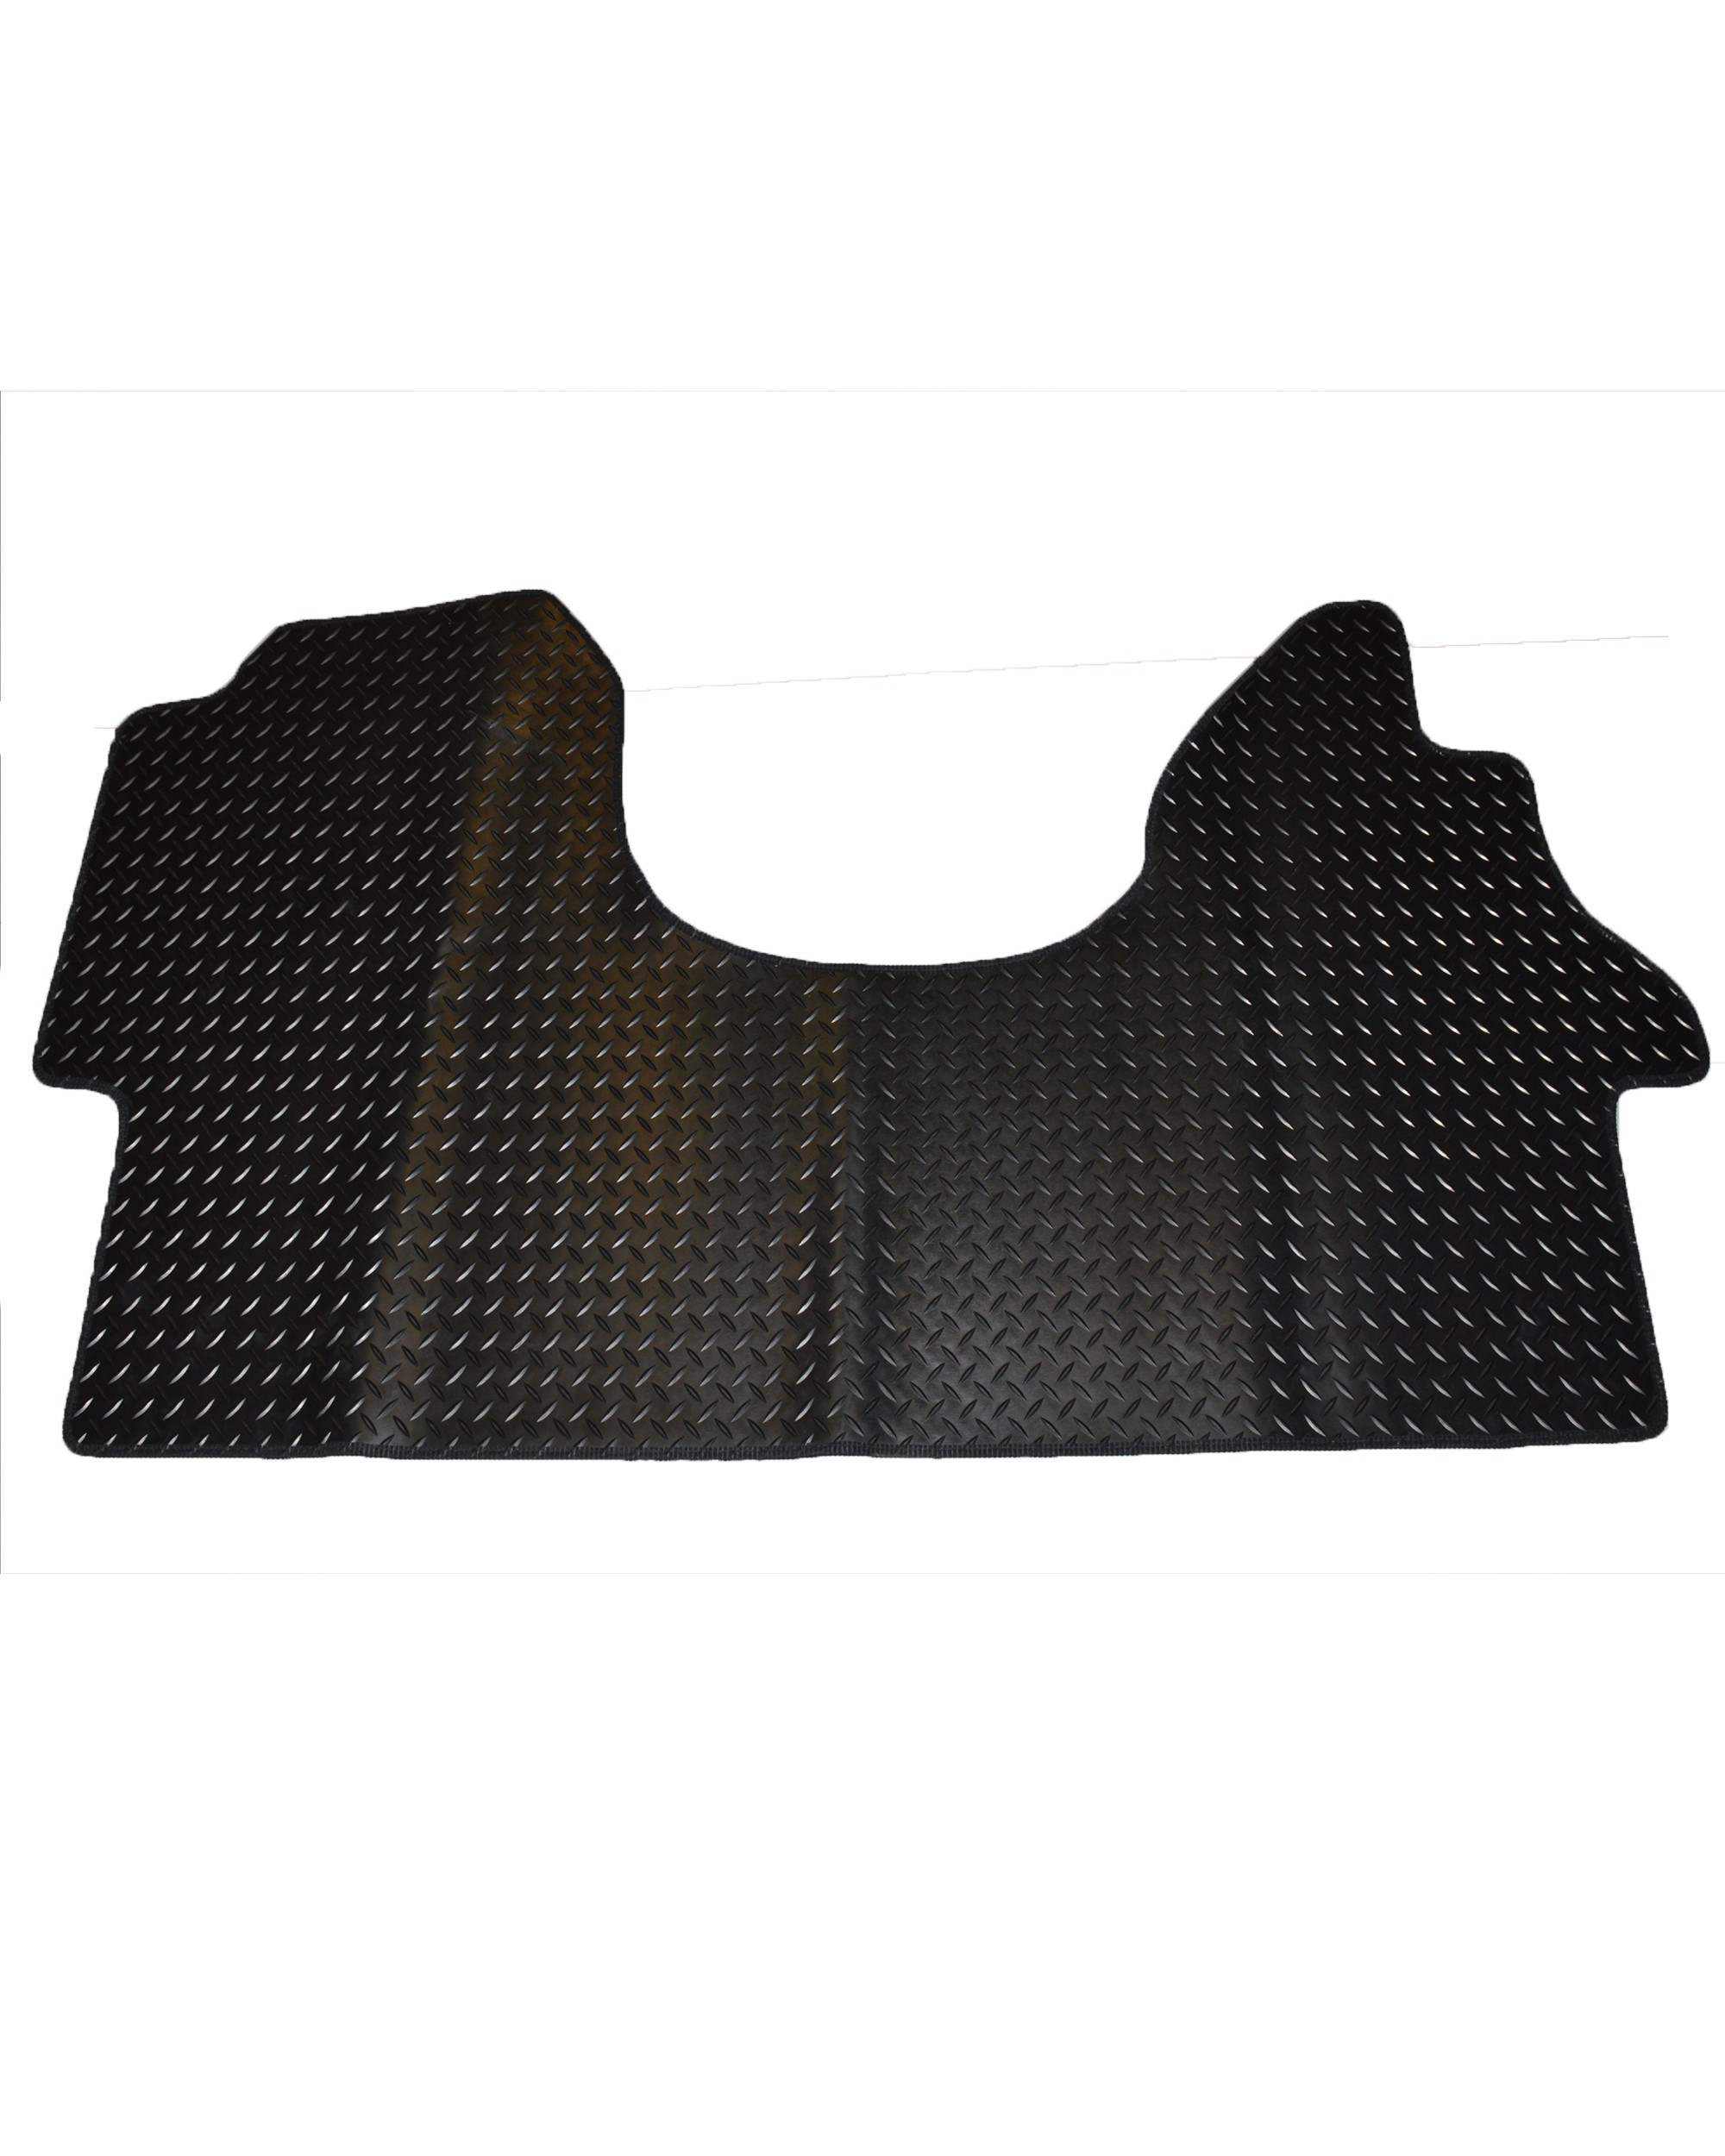 MERCEDES SPRINTER (2006-2018) Coverall Heavy Duty Rubber Mats